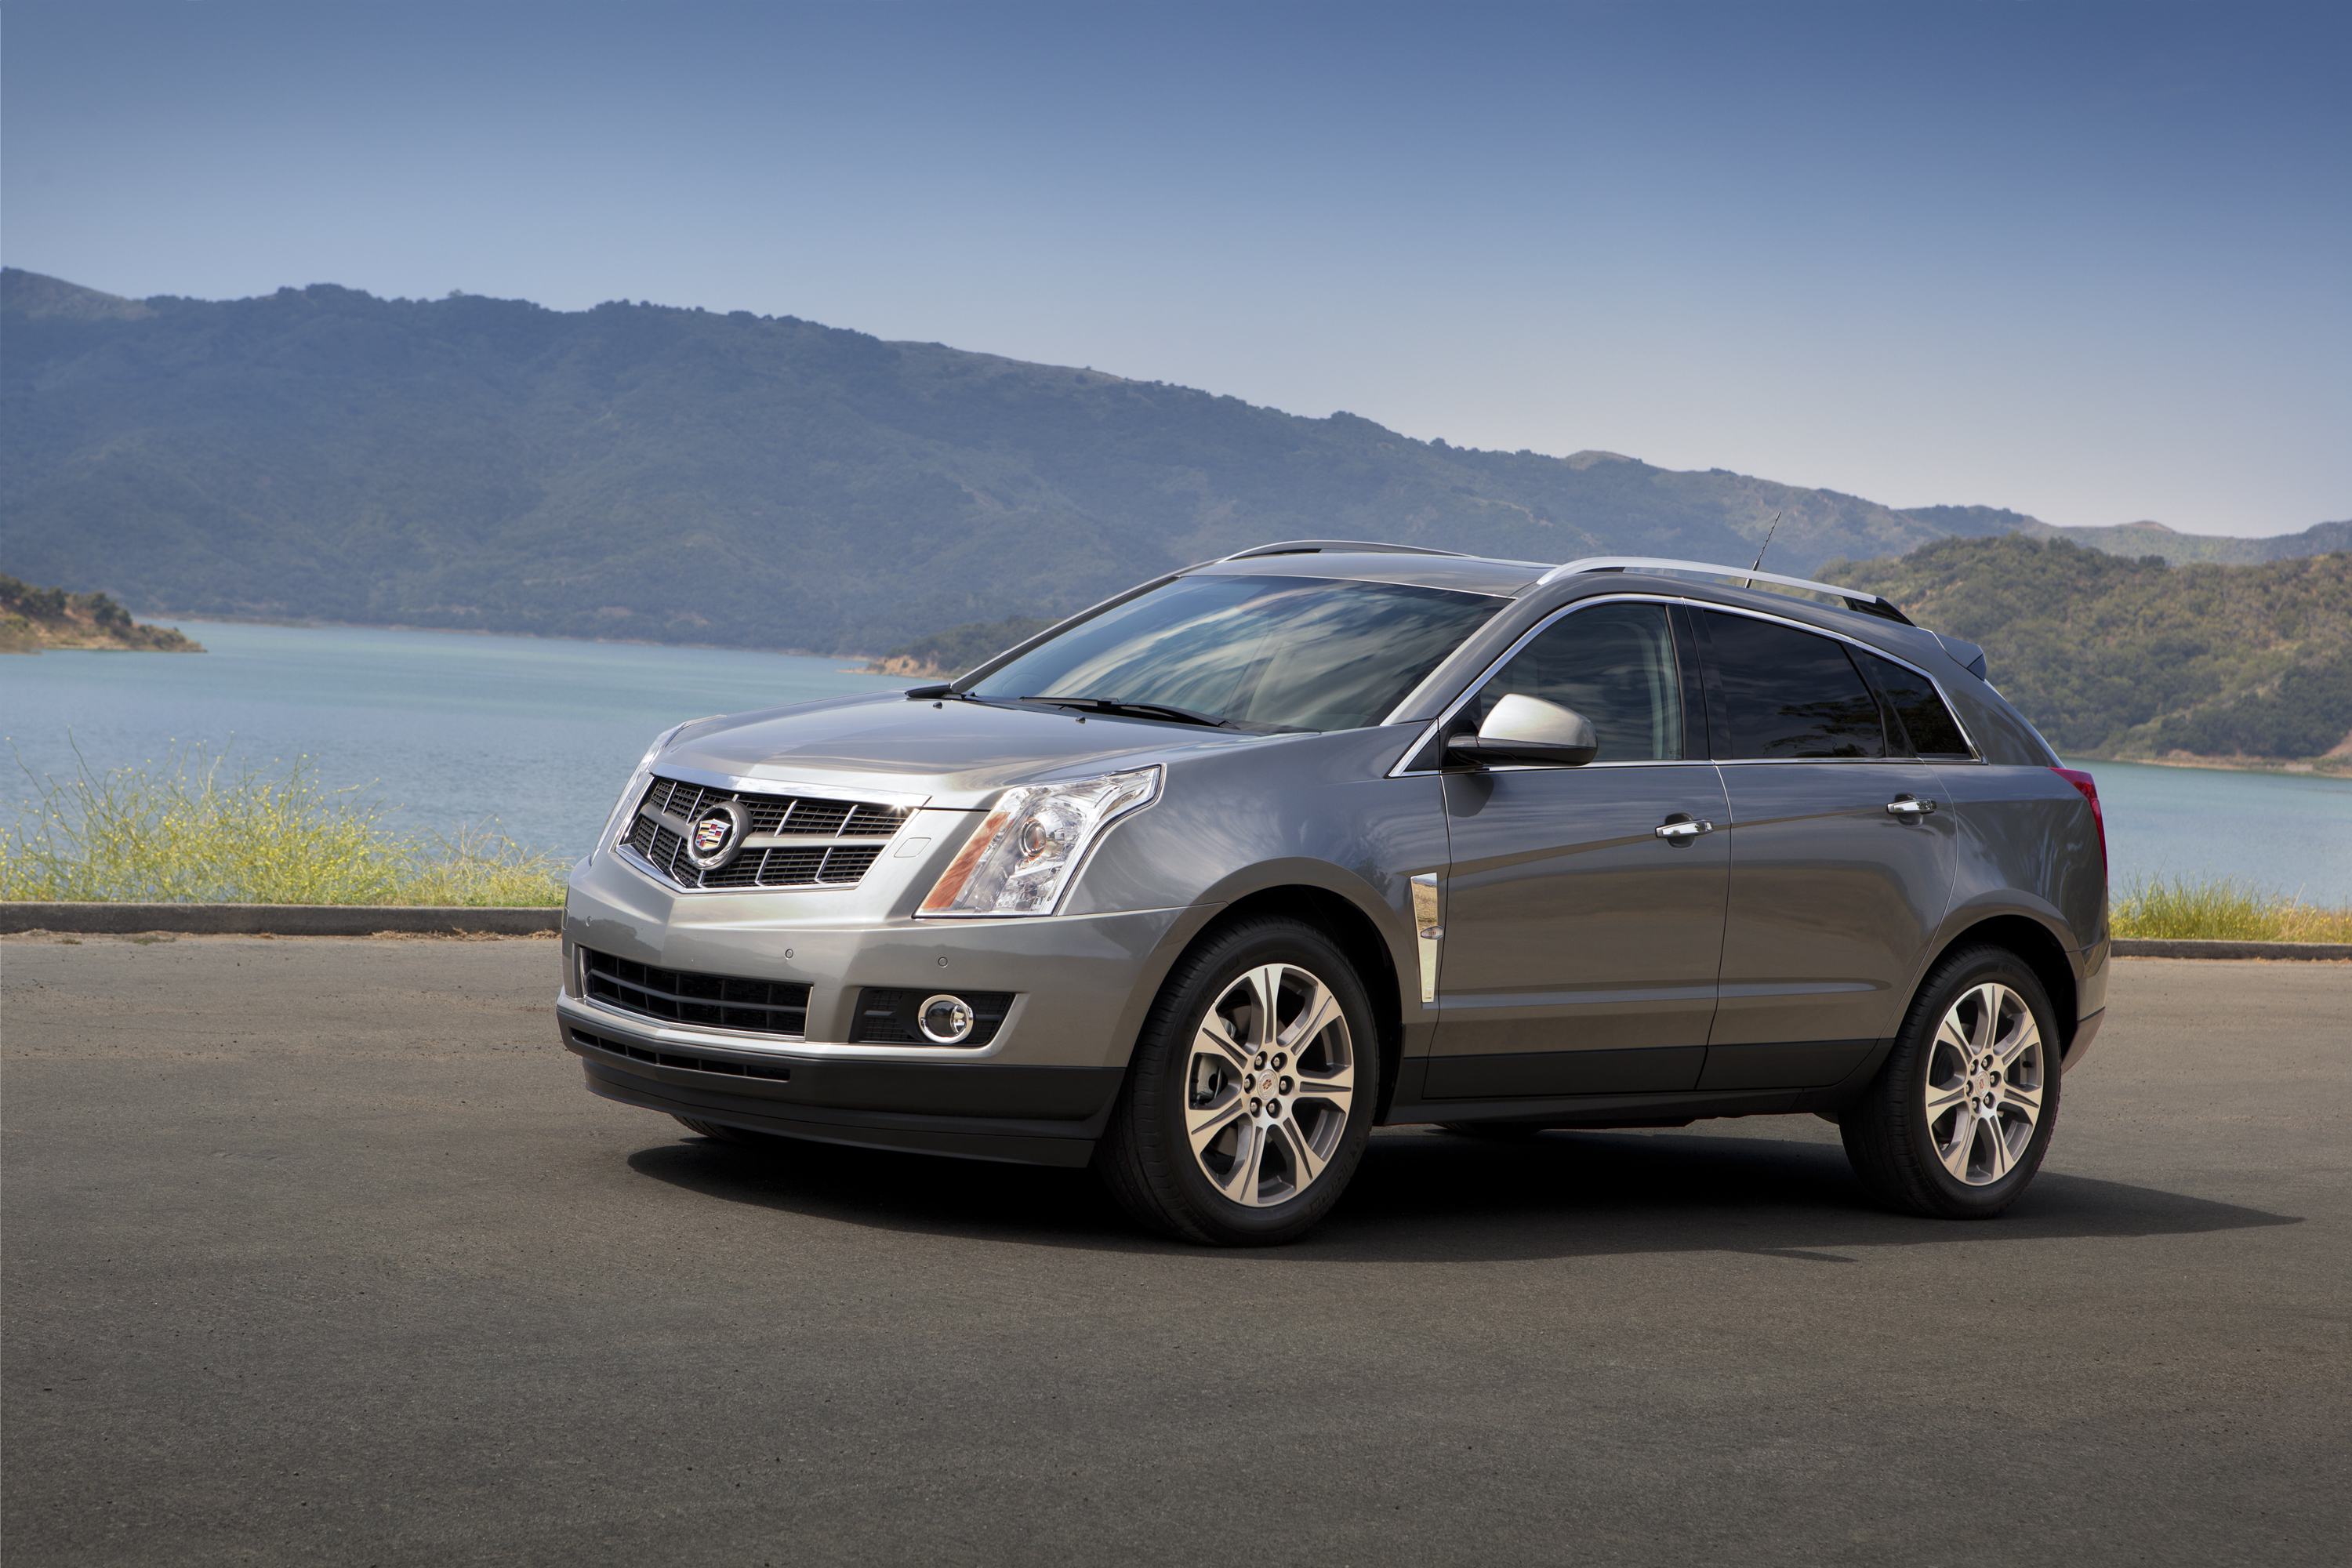 used inventory in srx cadillac dealer cod car cape